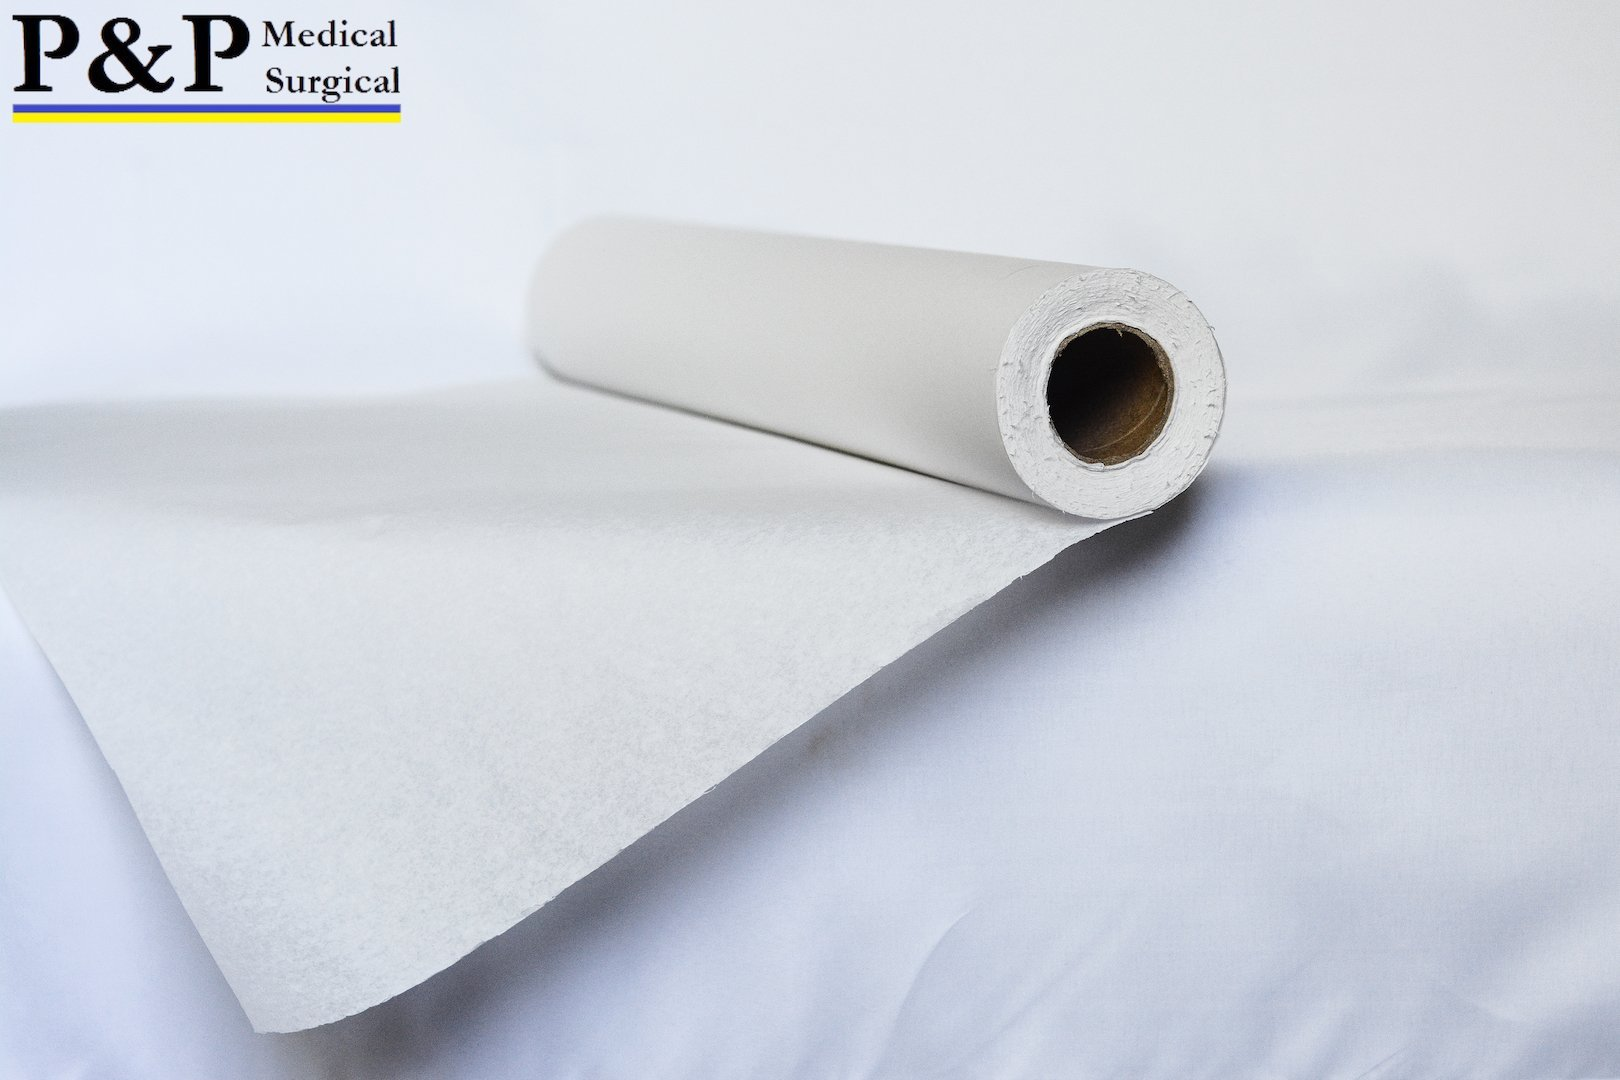 Exam Table Paper with Smooth Finish 21 '' x 225 ft (5 Rolls) White, Premium Lightweight and Comfortable